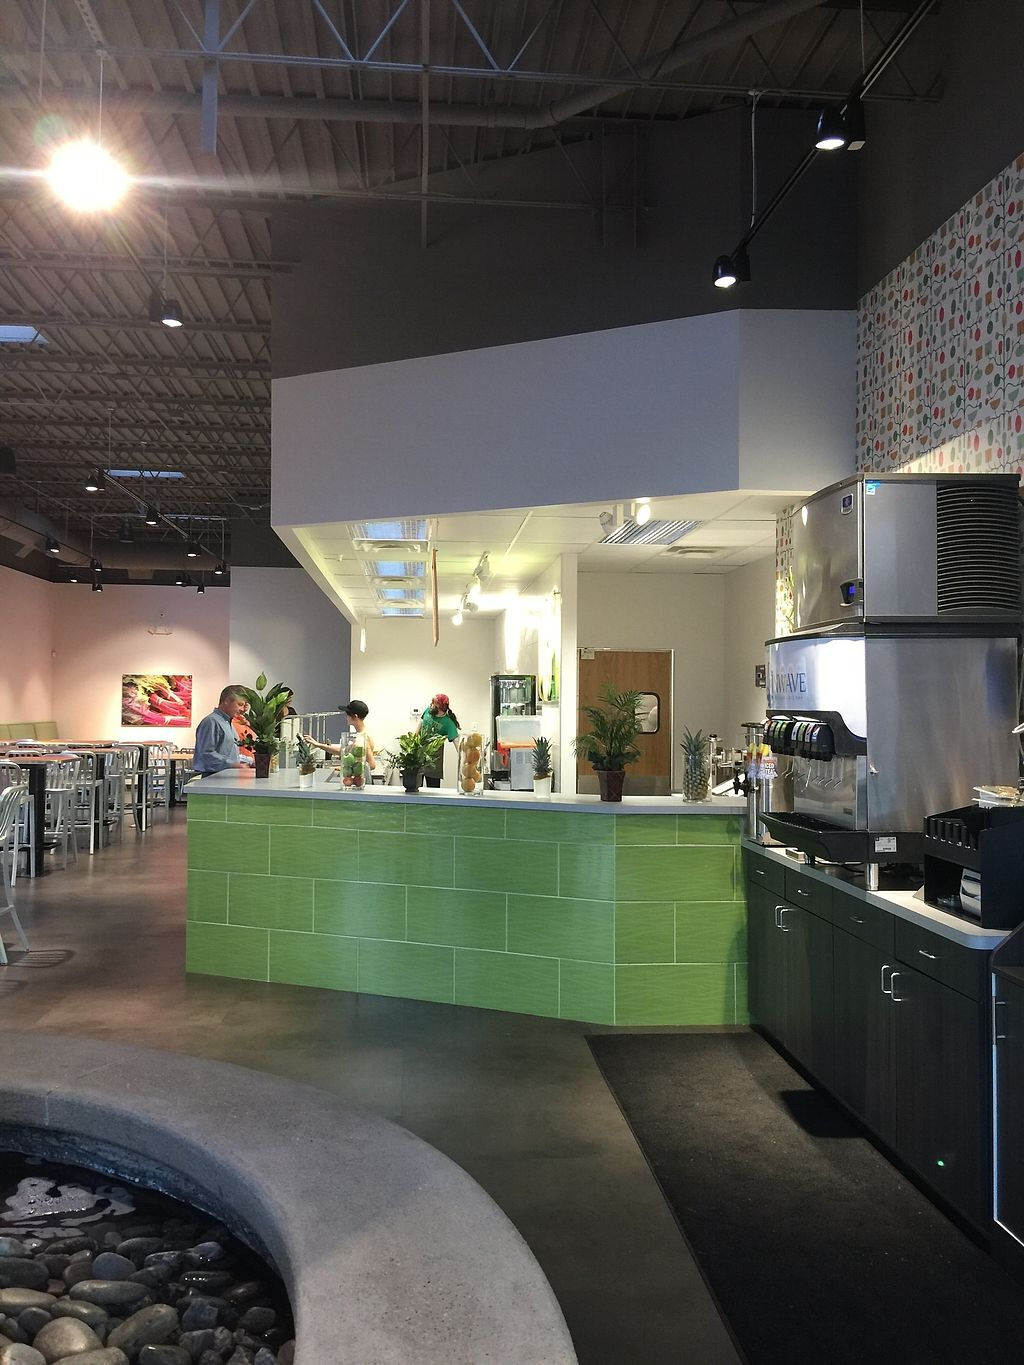 """Photo of InWave Restaurant & Juice Bar  by <a href=""""/members/profile/PeaceToAllBeings"""">PeaceToAllBeings</a> <br/>The restaurant always has great power bowls <br/> October 15, 2017  - <a href='/contact/abuse/image/99857/315553'>Report</a>"""